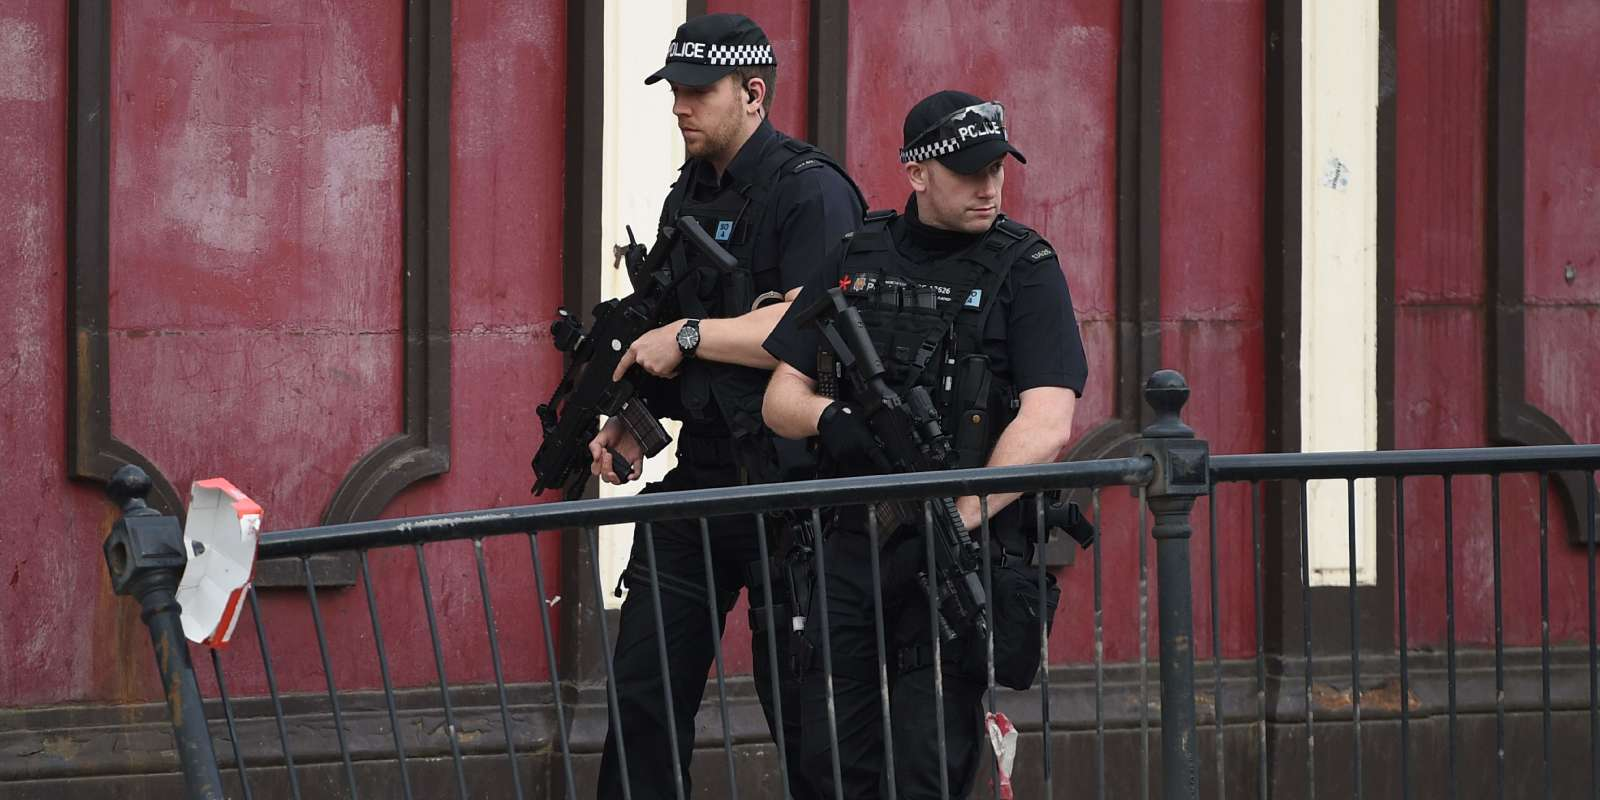 Armed police patrol near Victoria station in Manchester, northwest England on May 23, 2017. Twenty two people have been killed and dozens injured in Britain's deadliest terror attack in over a decade after a suspected suicide bomber targeted fans leaving a concert of US singer Ariana Grande in Manchester. / AFP / Oli SCARFF